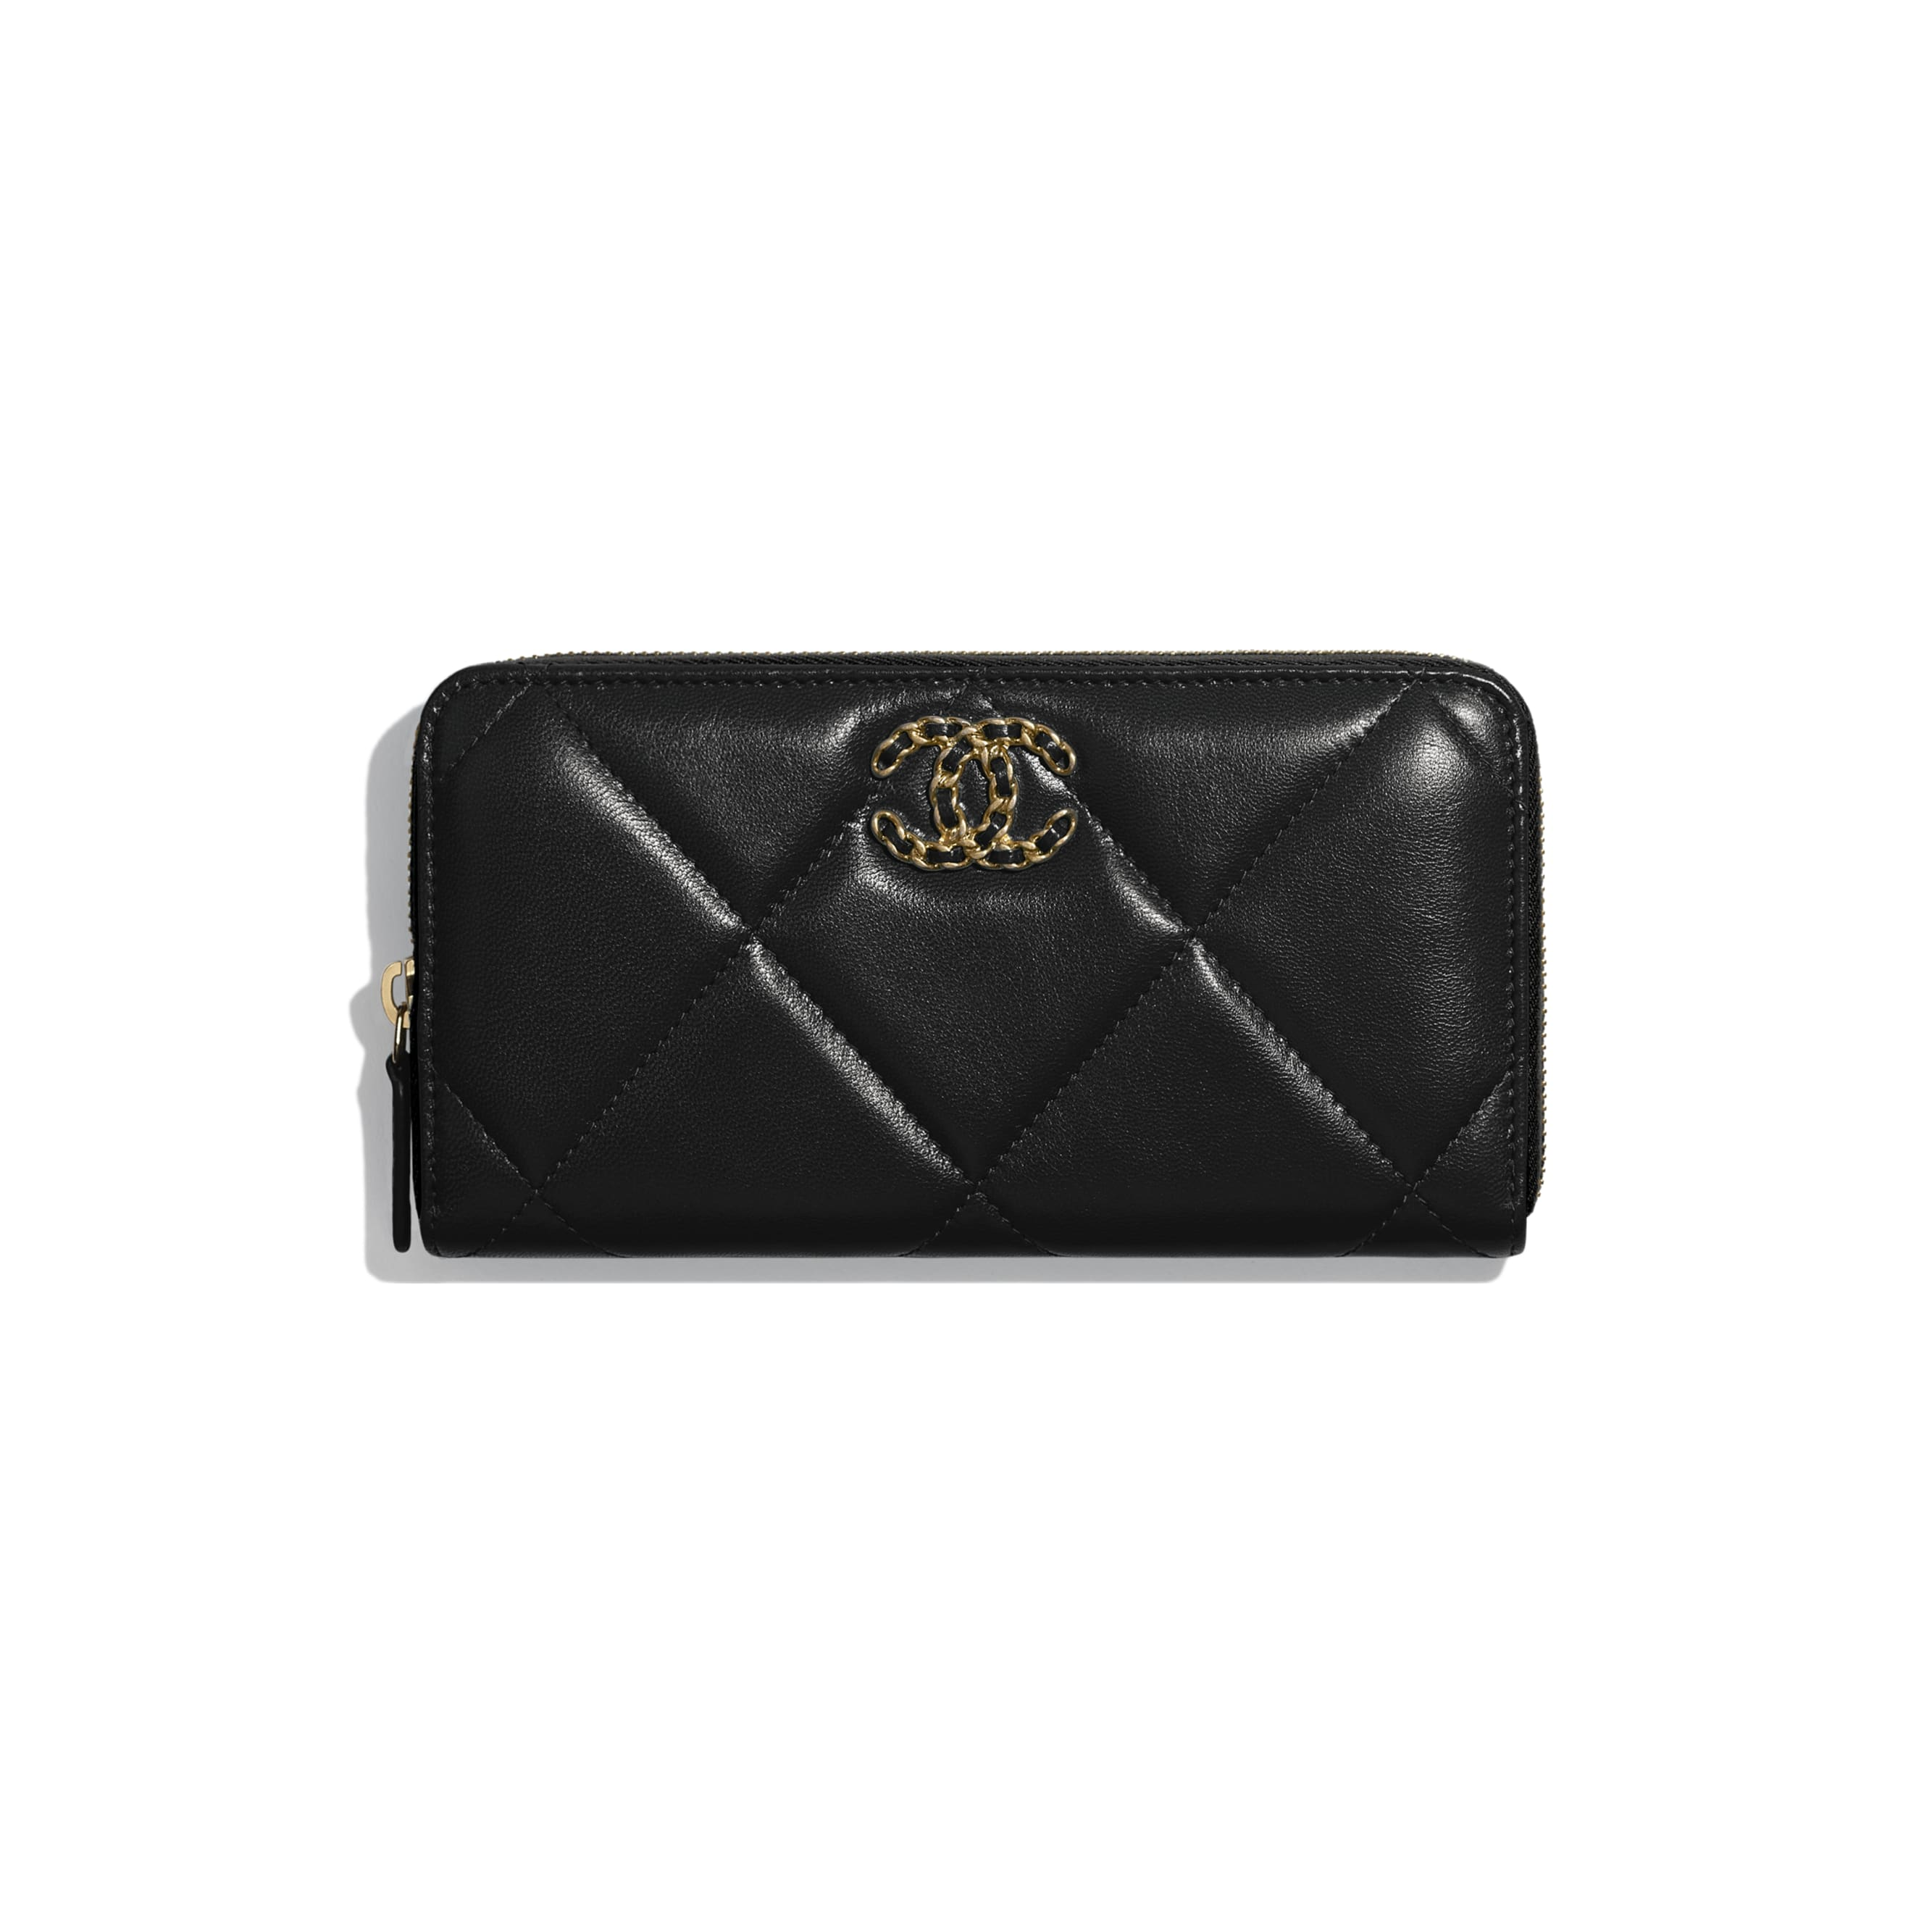 CHANEL 19 Long Zipped Wallet - Black - Goatskin, Gold-Tone, Silver-Tone & Ruthenium-Finish Metal - Default view - see standard sized version